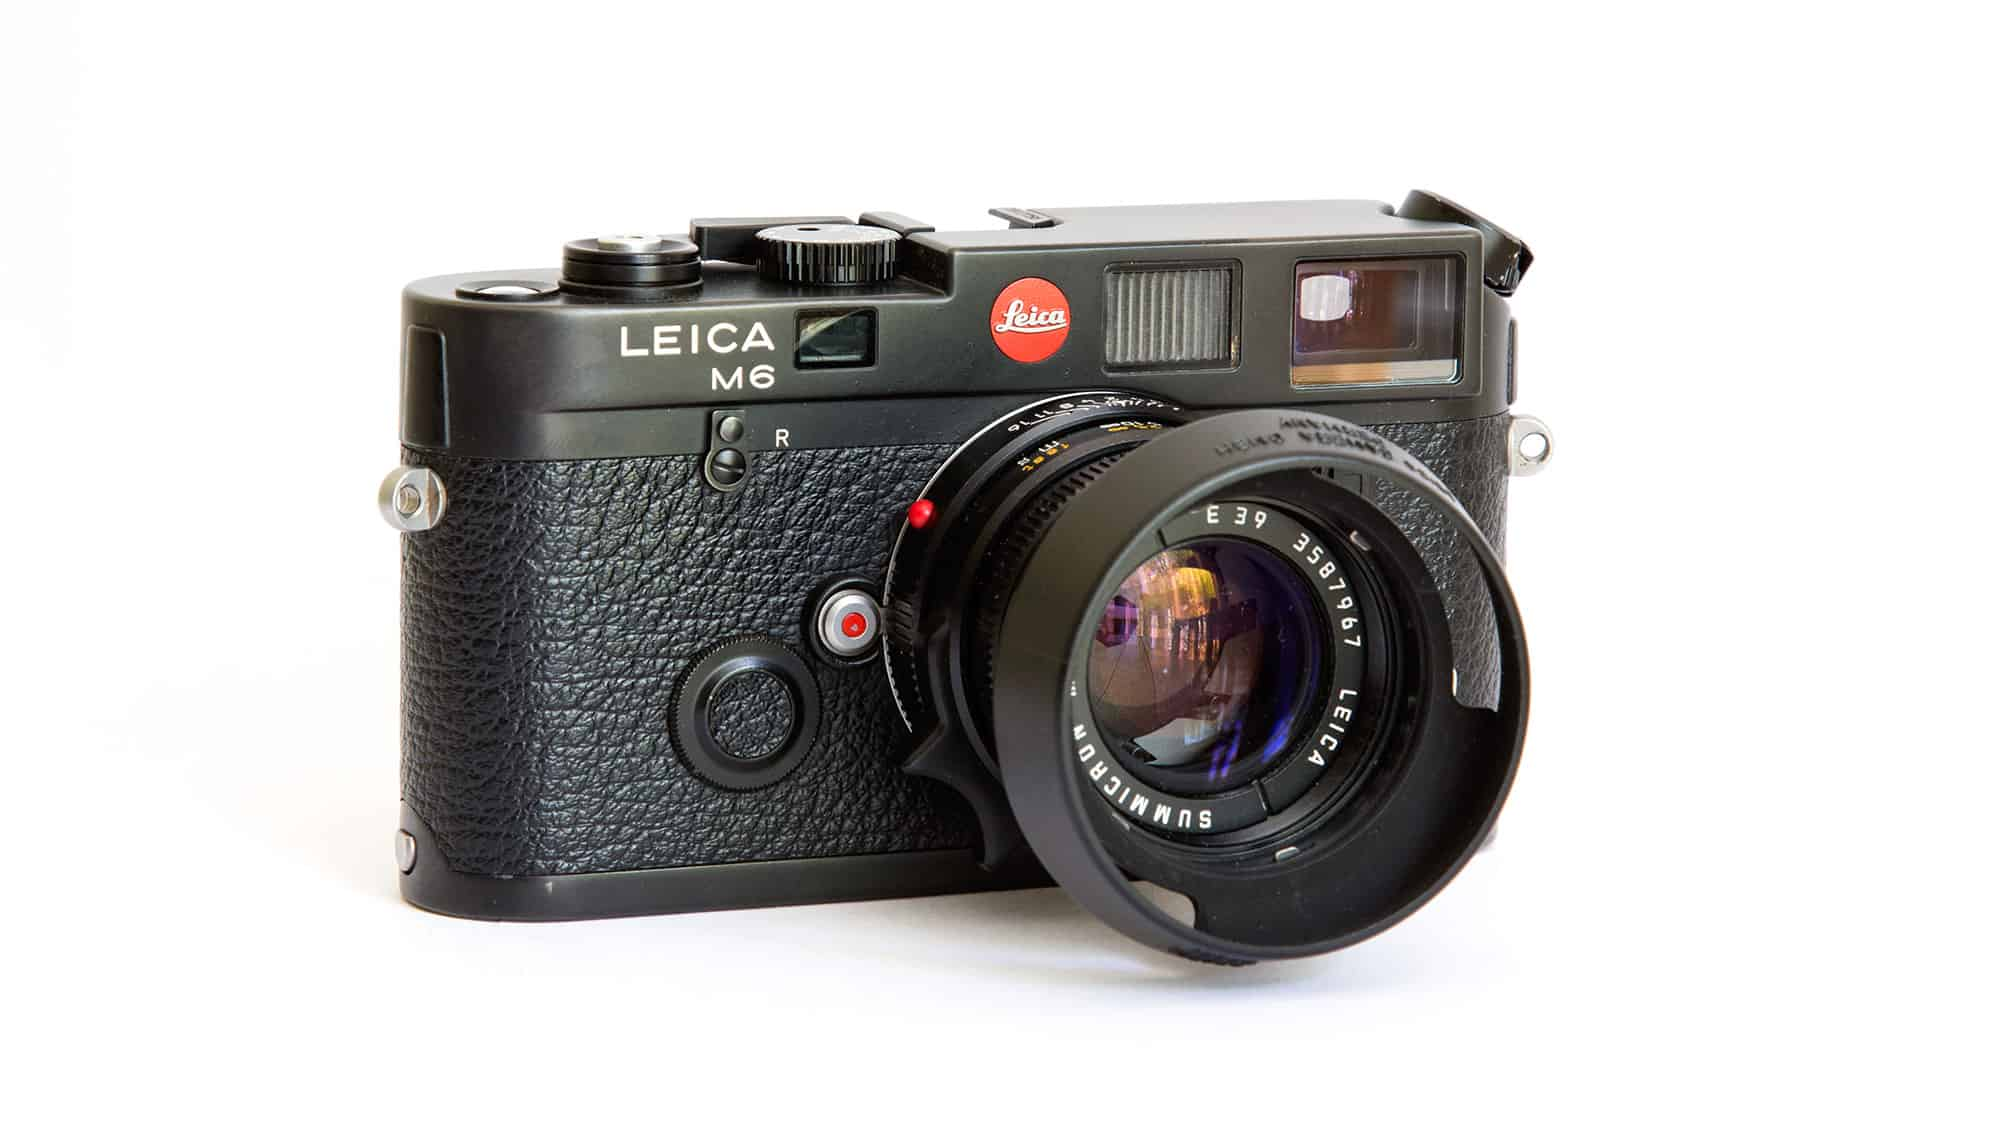 Leica M6 black 35mm camera body with a Leica Summicron-M 50mm f2 lens.